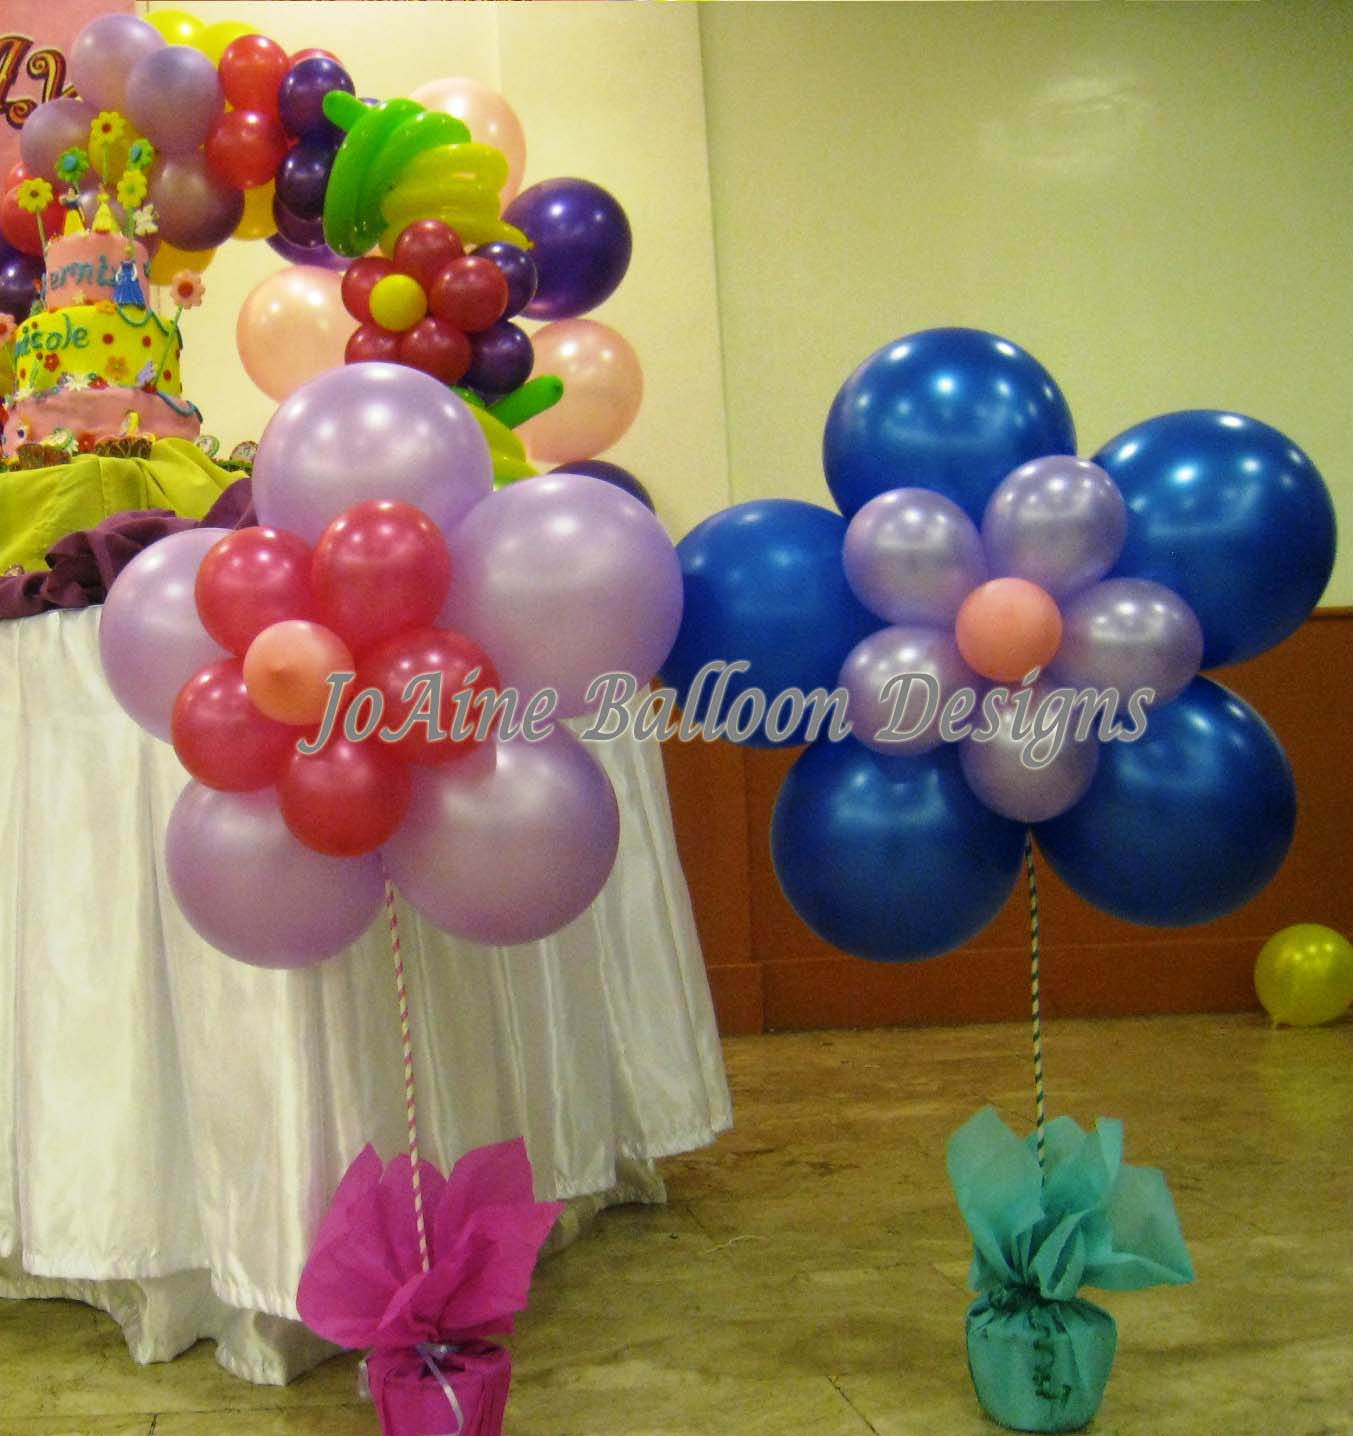 Joaine balloon designs balloon designs and party needs for Ballons decoration